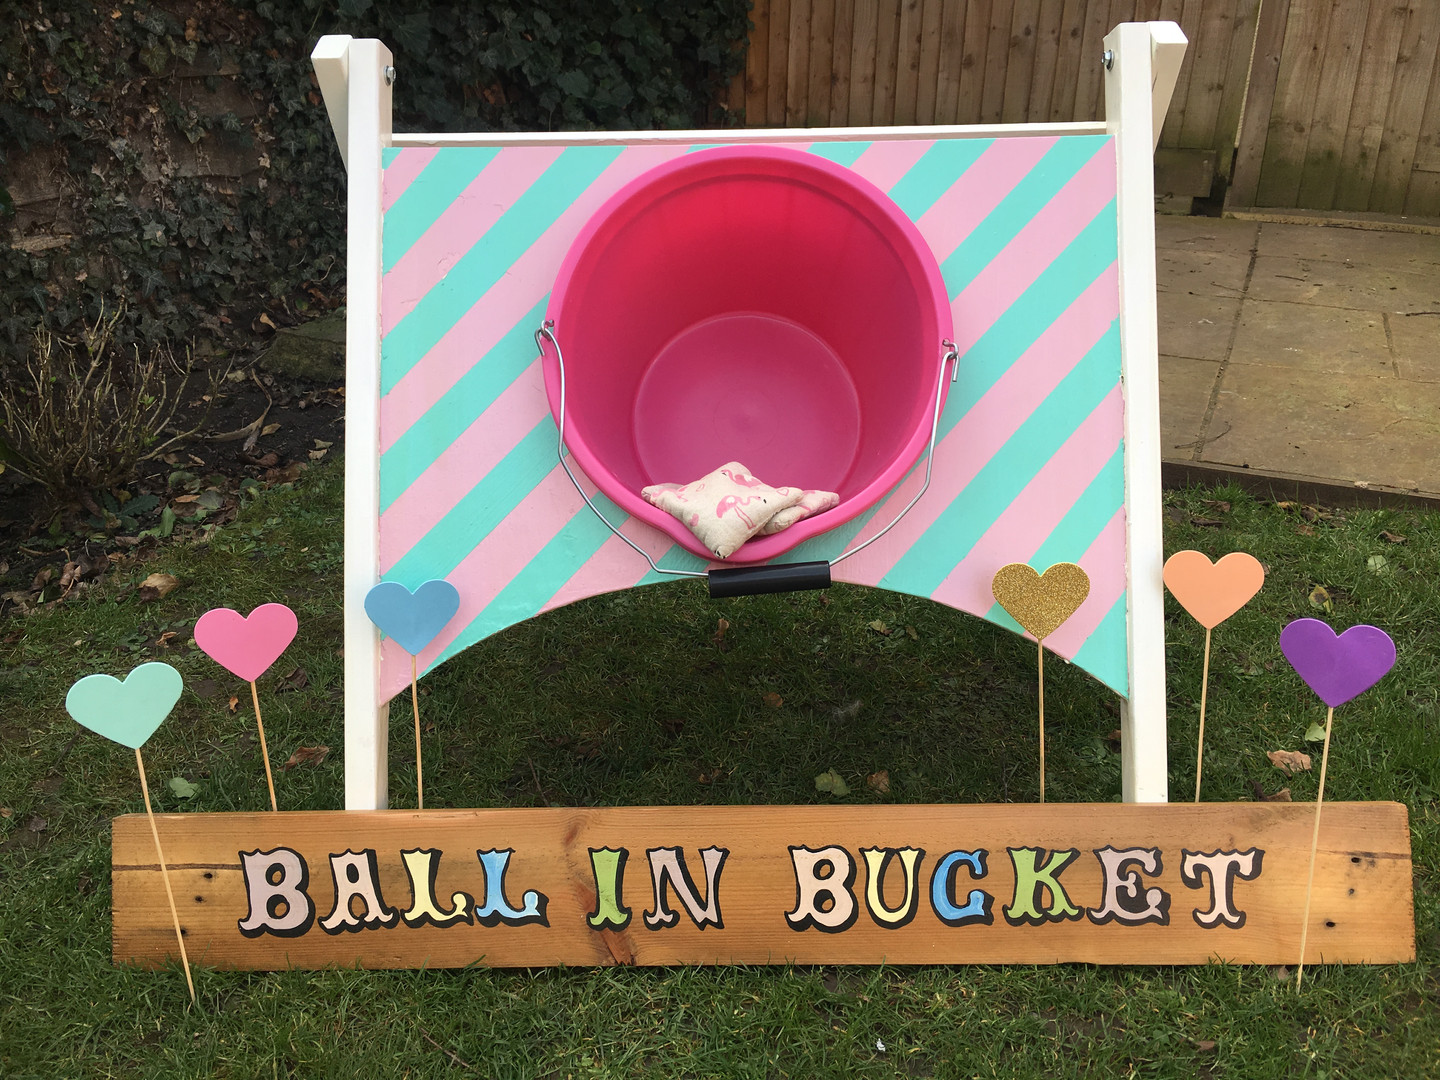 Ball in Bucket Game